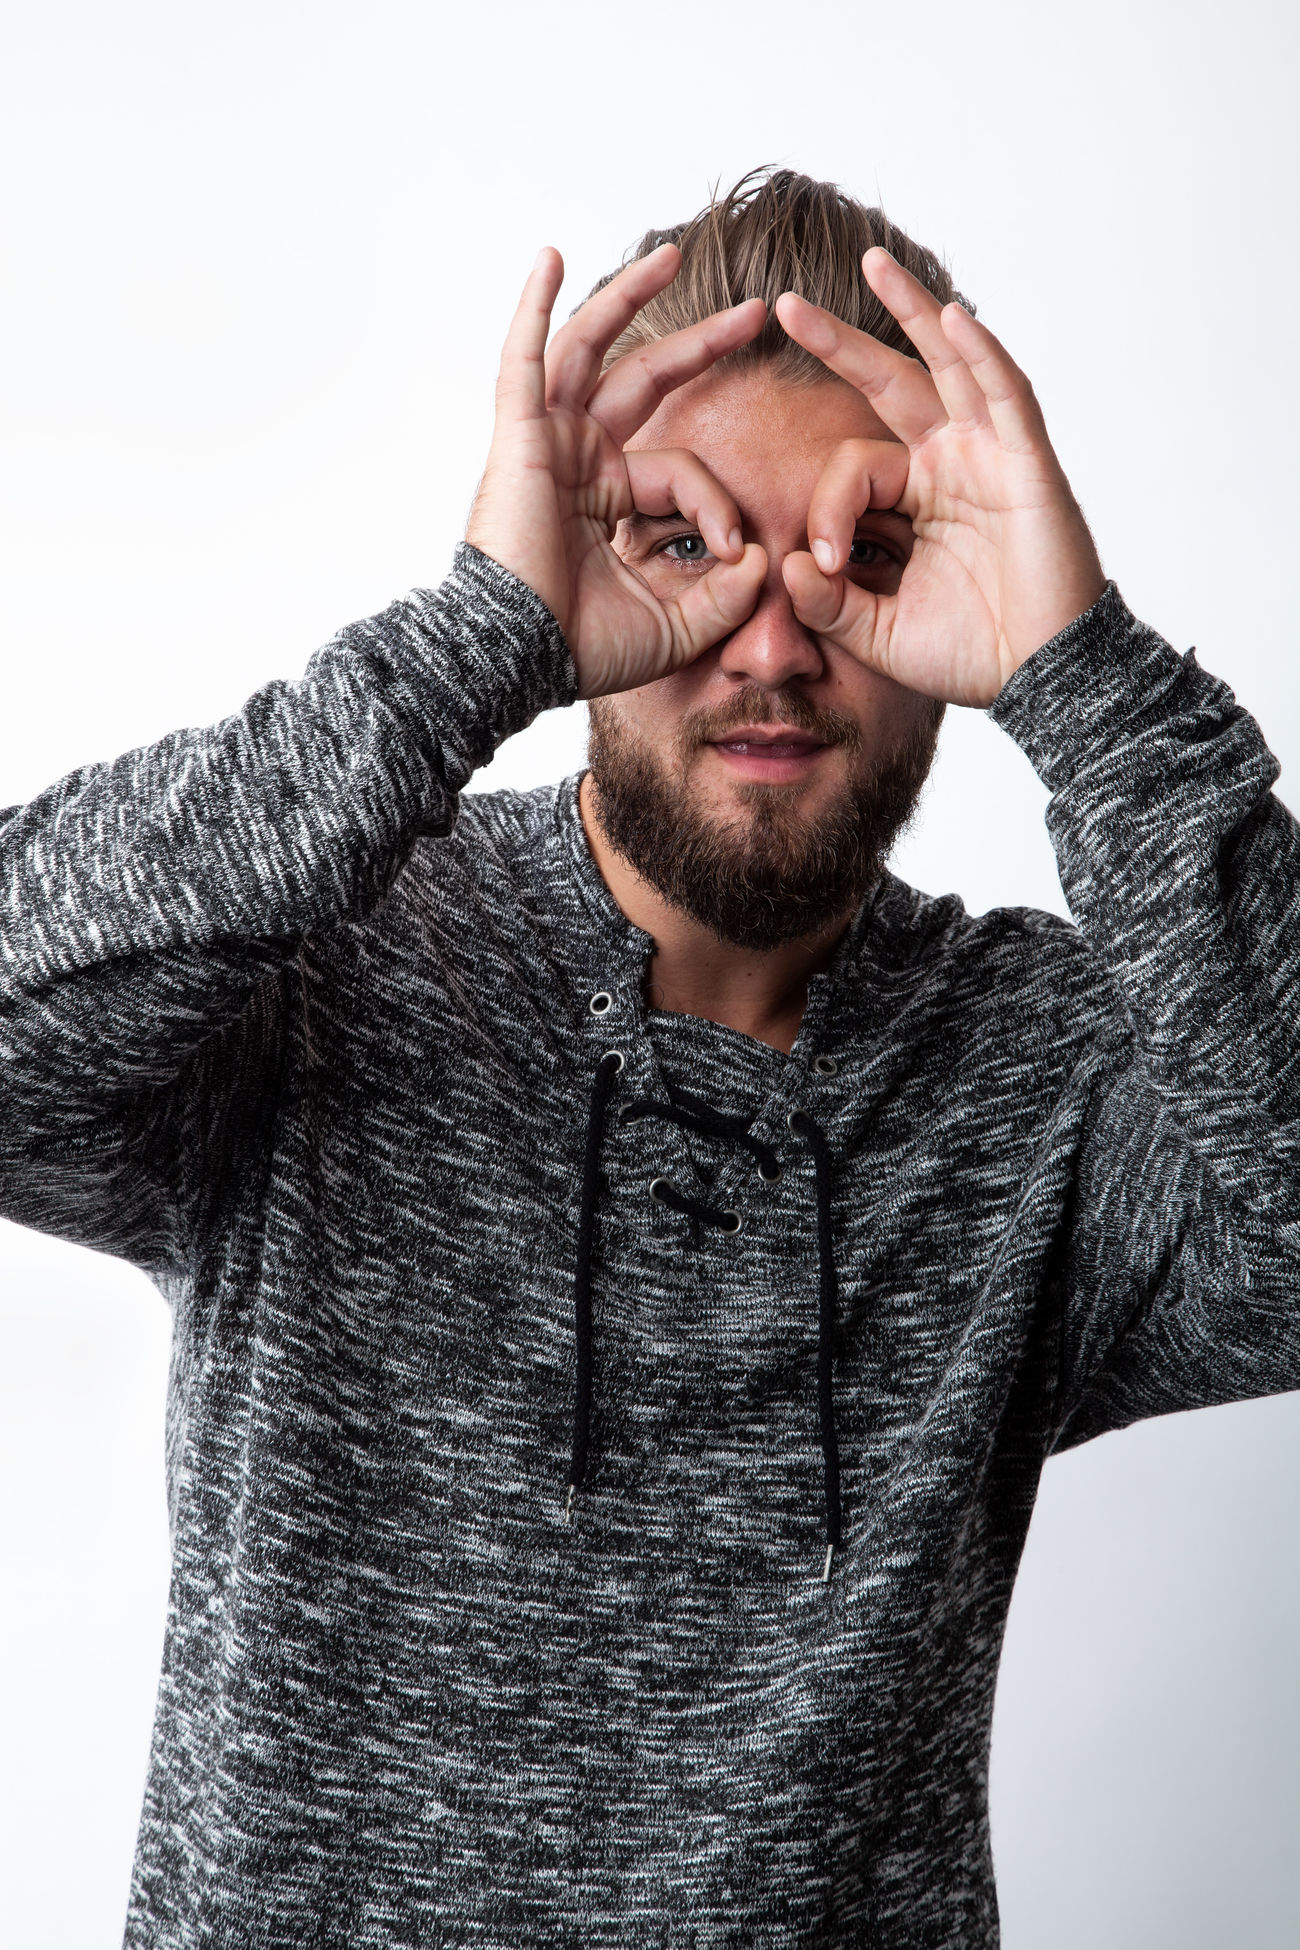 Handsome young man smiling, making binoculars with his hands isolated on white background Adult Arms Beard Binocular Casual Close-up Curly Eye Farsightedness Focus Gesture Hand Isolated Looking Male Myopia One People Person Portrait Standing Studio Surprised View Young